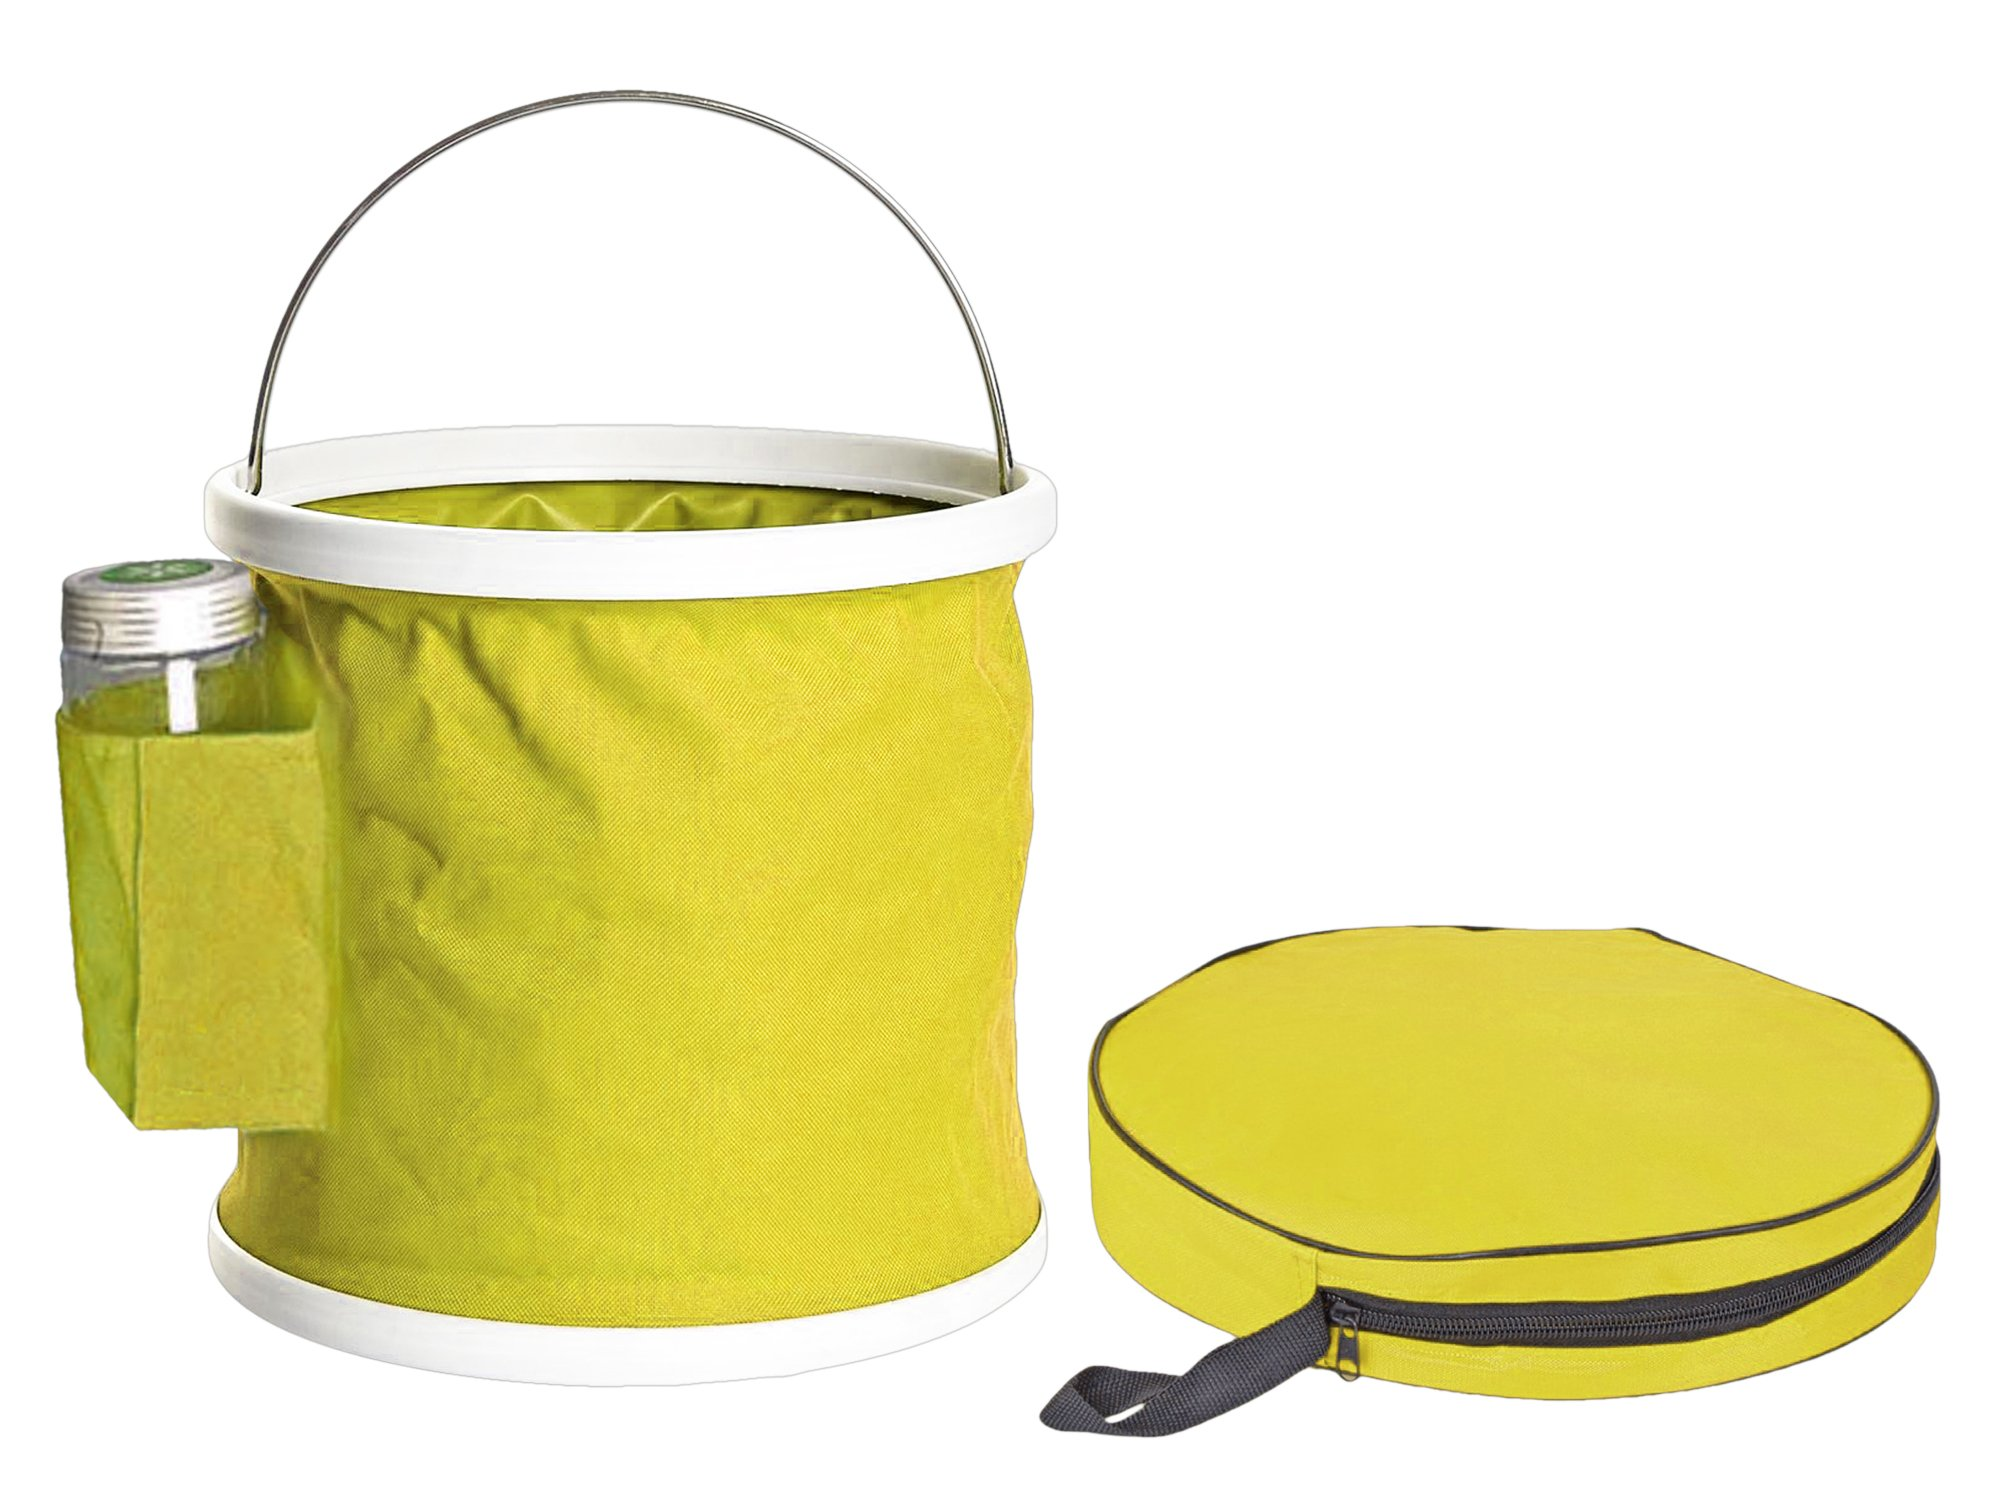 Five Oceans Folding Collapsible Water Bucket for Boat/Caravan/RV FO-3115